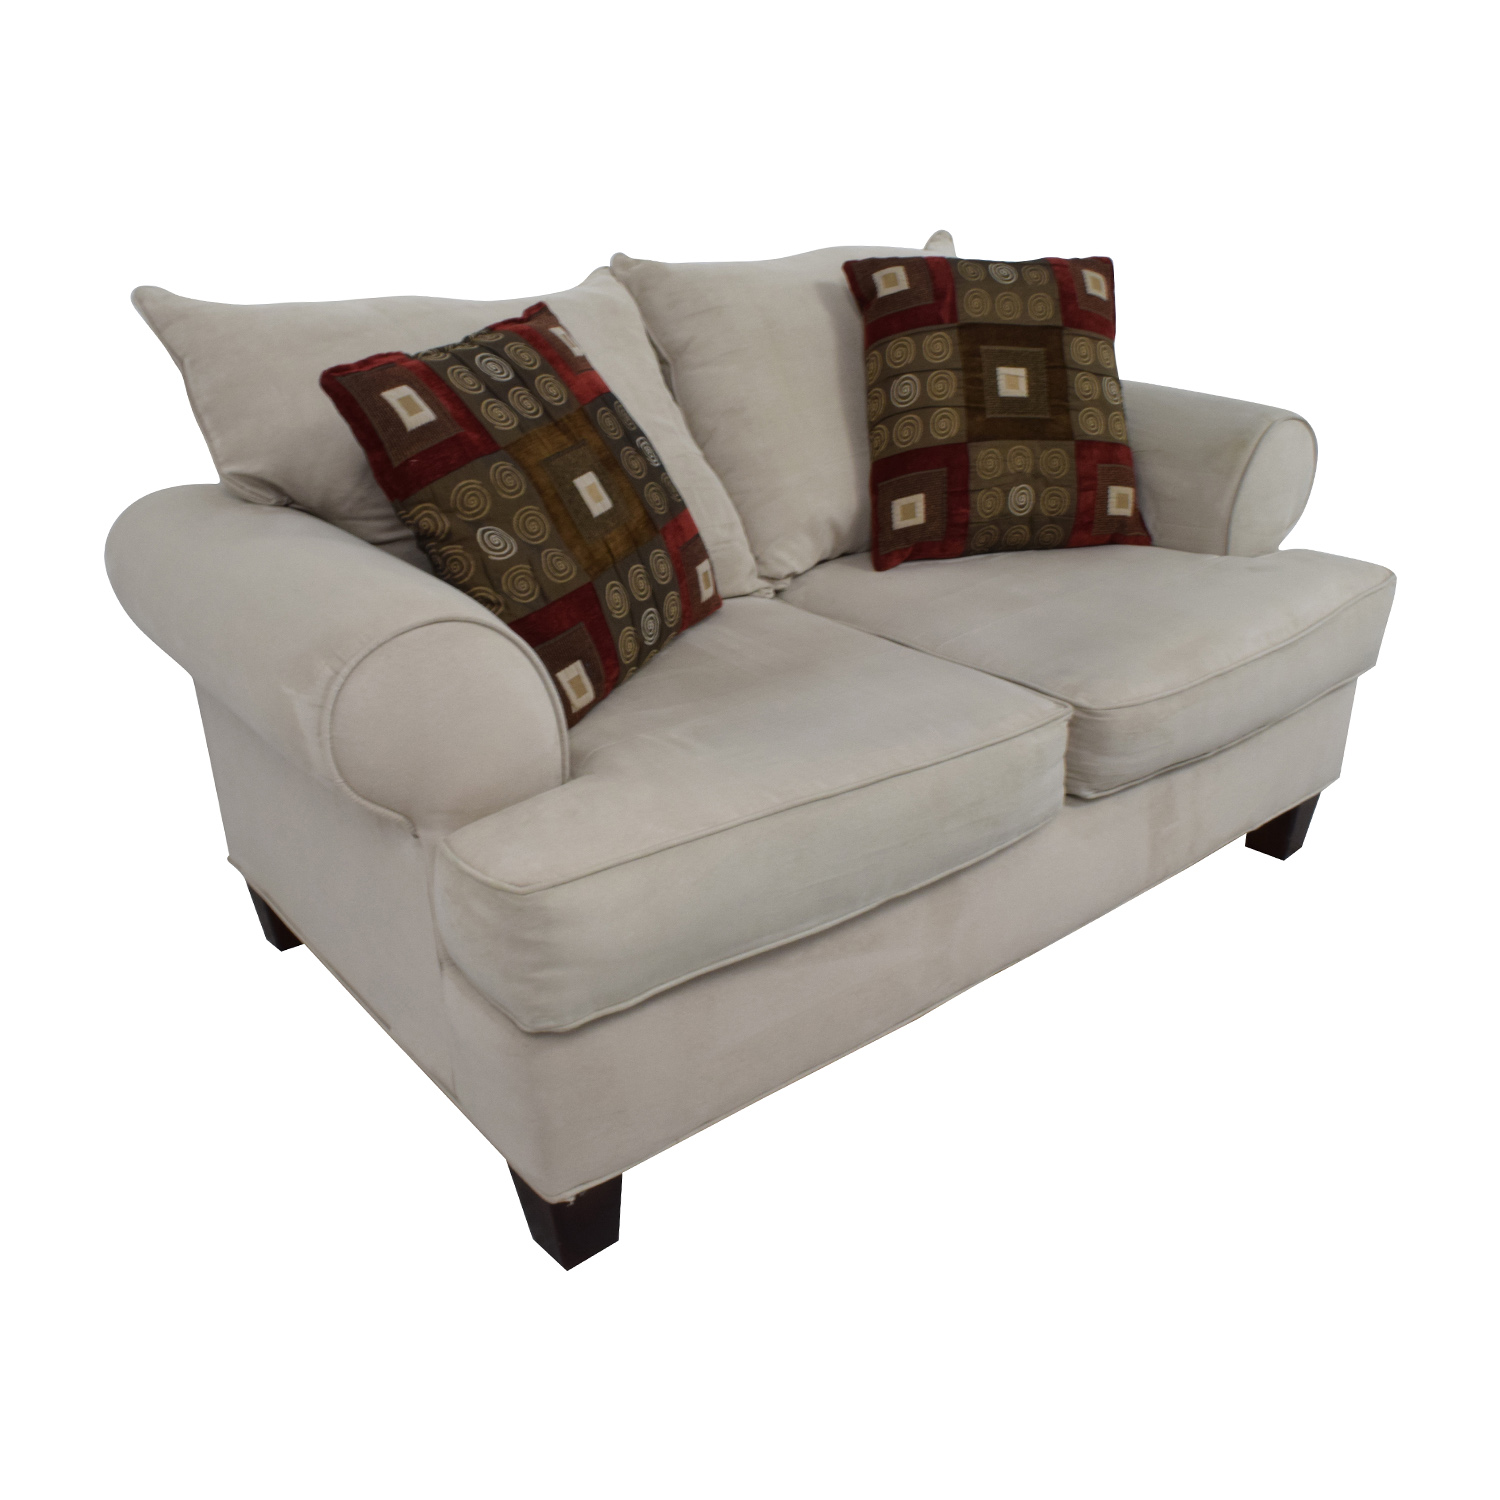 67 off bob 39 s discount furniture bob 39 s discount furniture cream love seat sofas What furniture brands does home goods carry